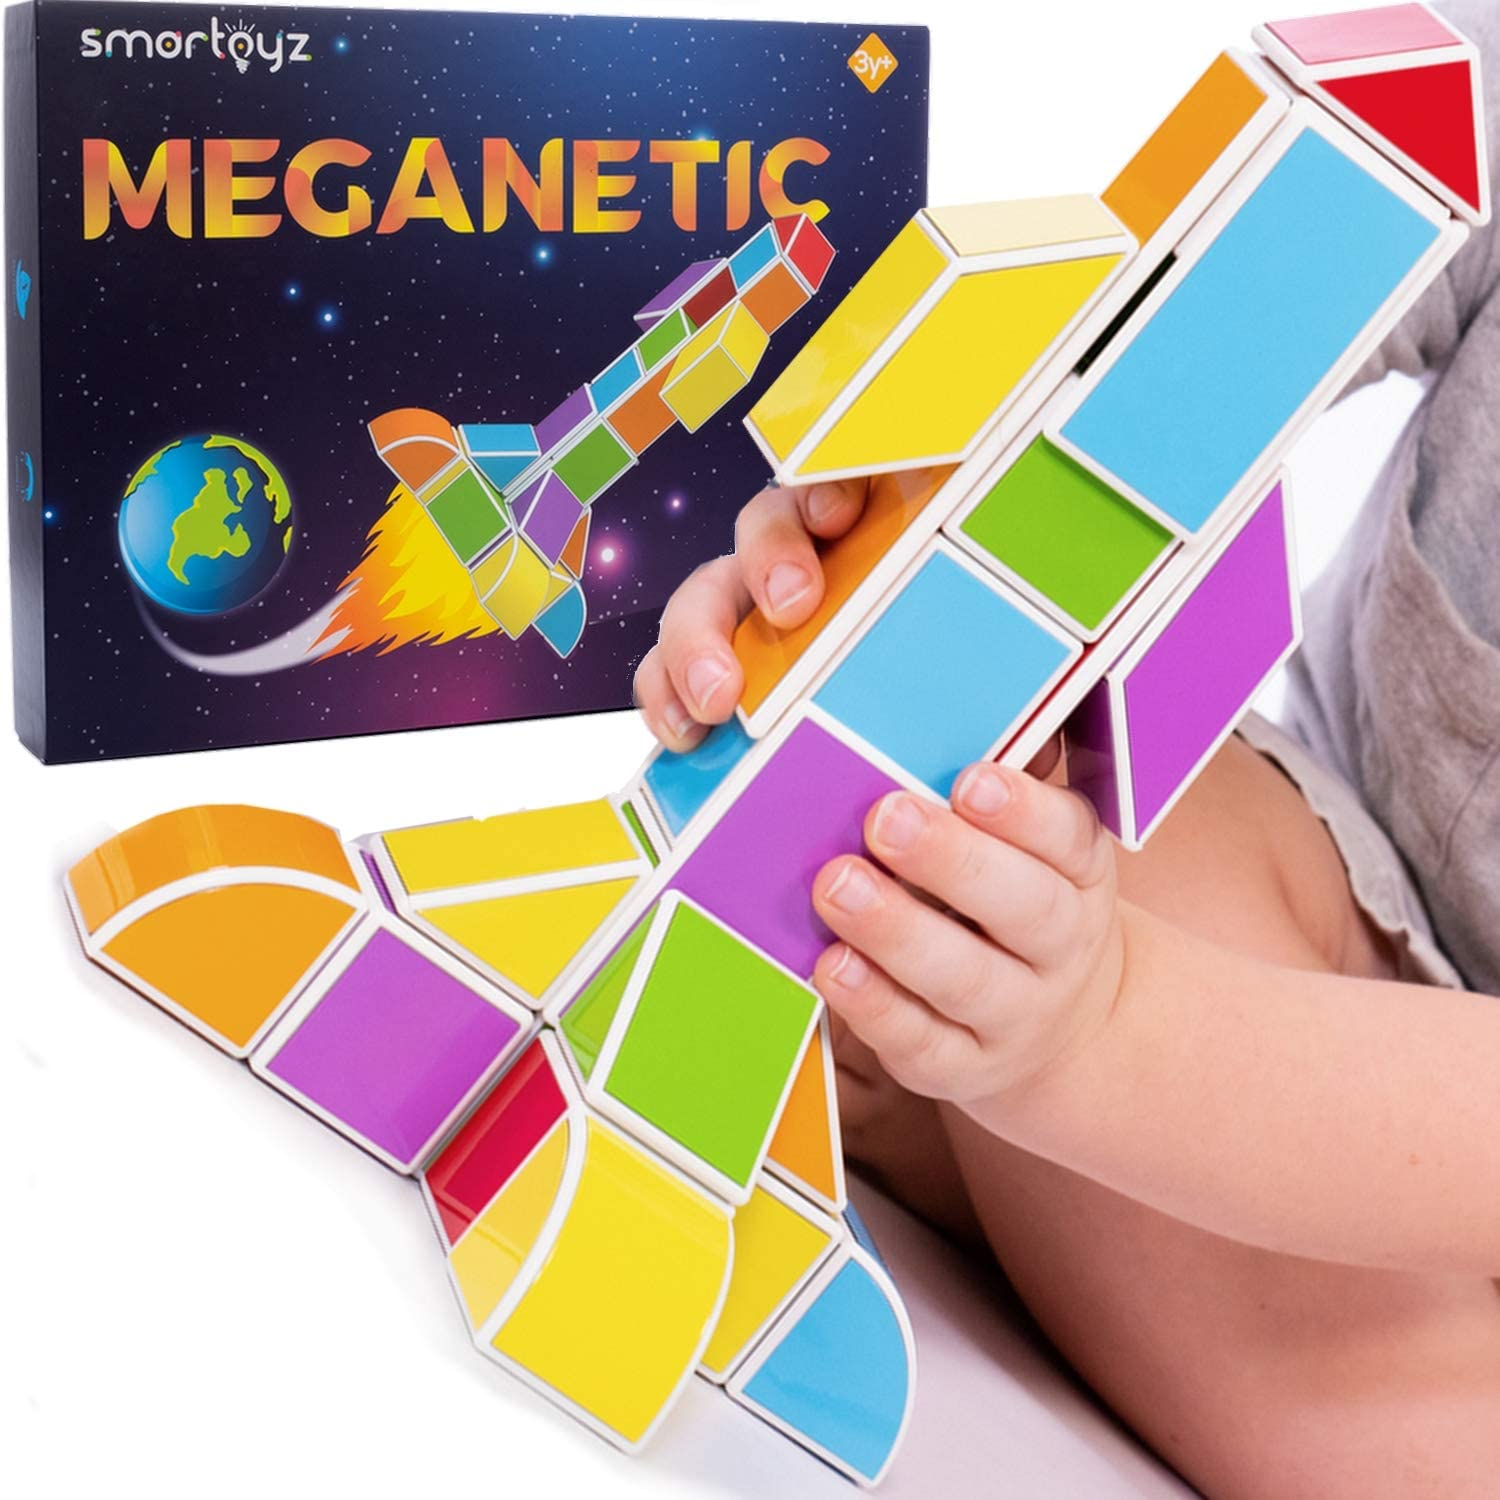 SMARTOYZ Magnetic Building Blocks and Tiles for Kids – STEM Toy Blocks for Ages 3+ Sharpen Creativity, Problem Solving, Fine Motor Skills – BPA-Free Plastic Building Bricks Magnets for Toddlers